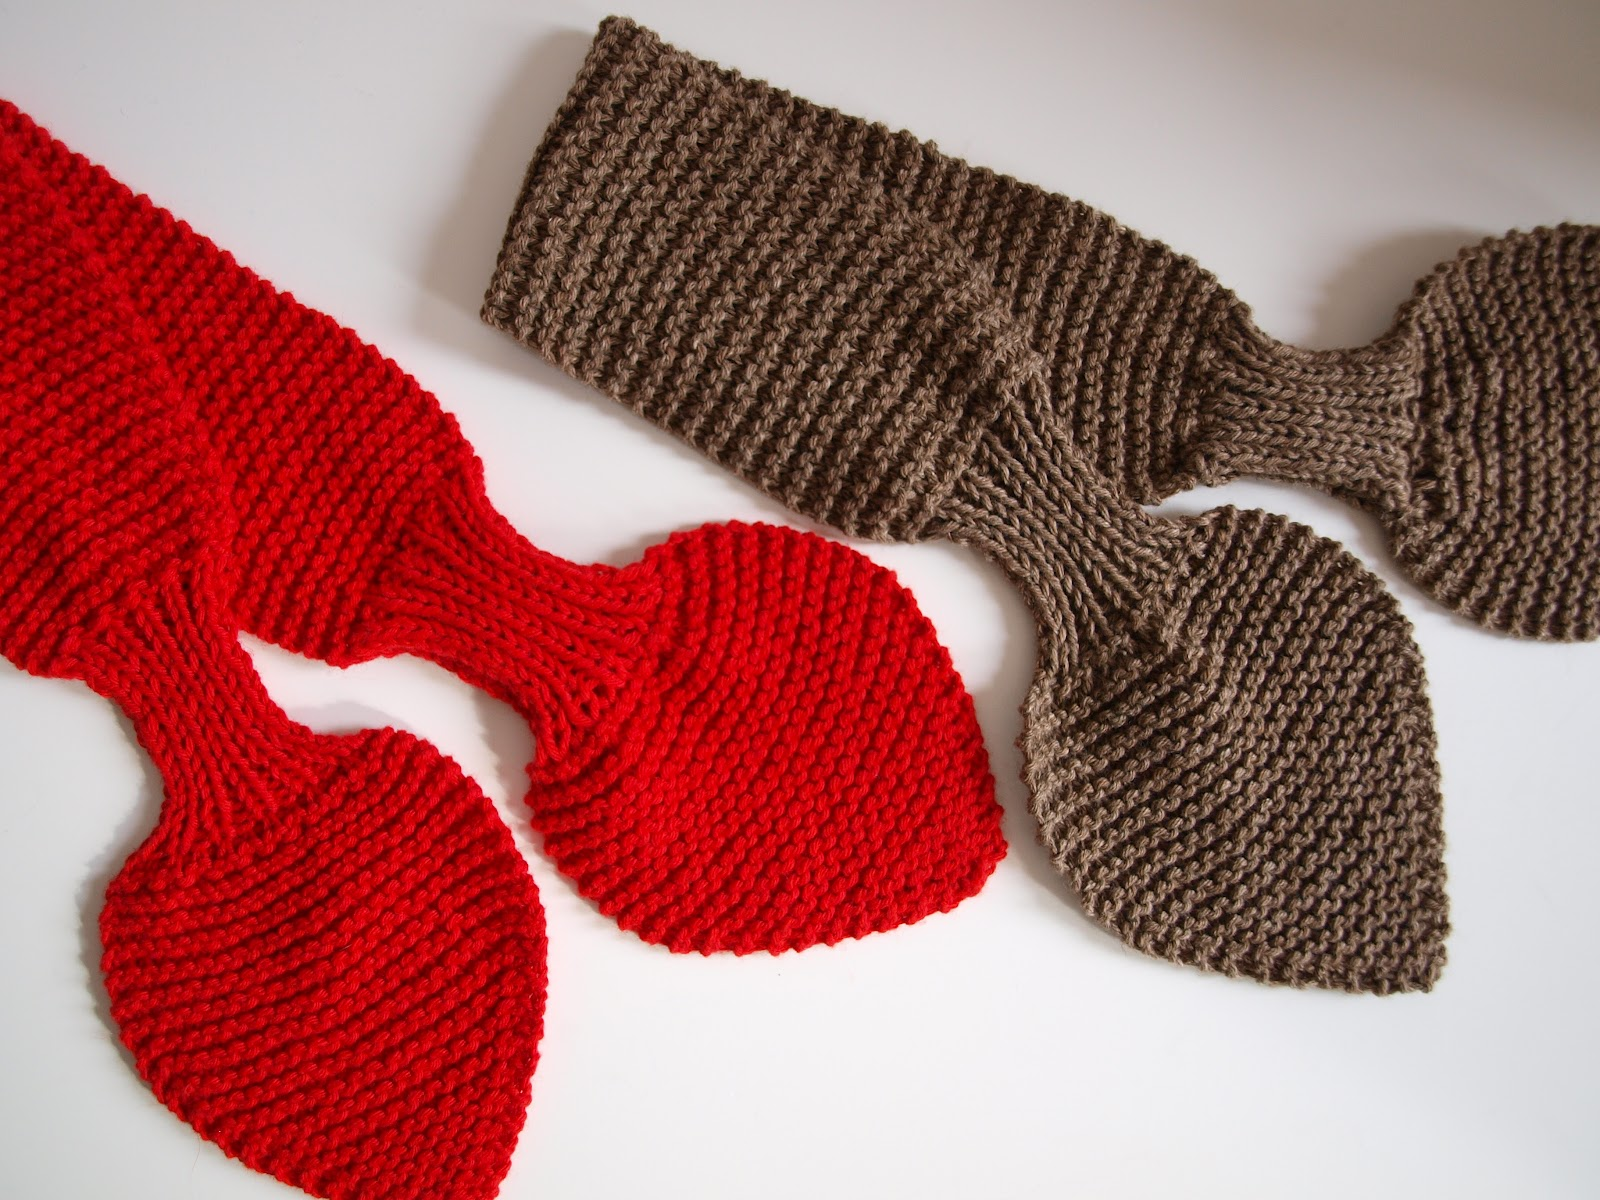 Knitting Pattern For Bow Tie Scarf : Crafted by Carly: Bow-knot Scarves